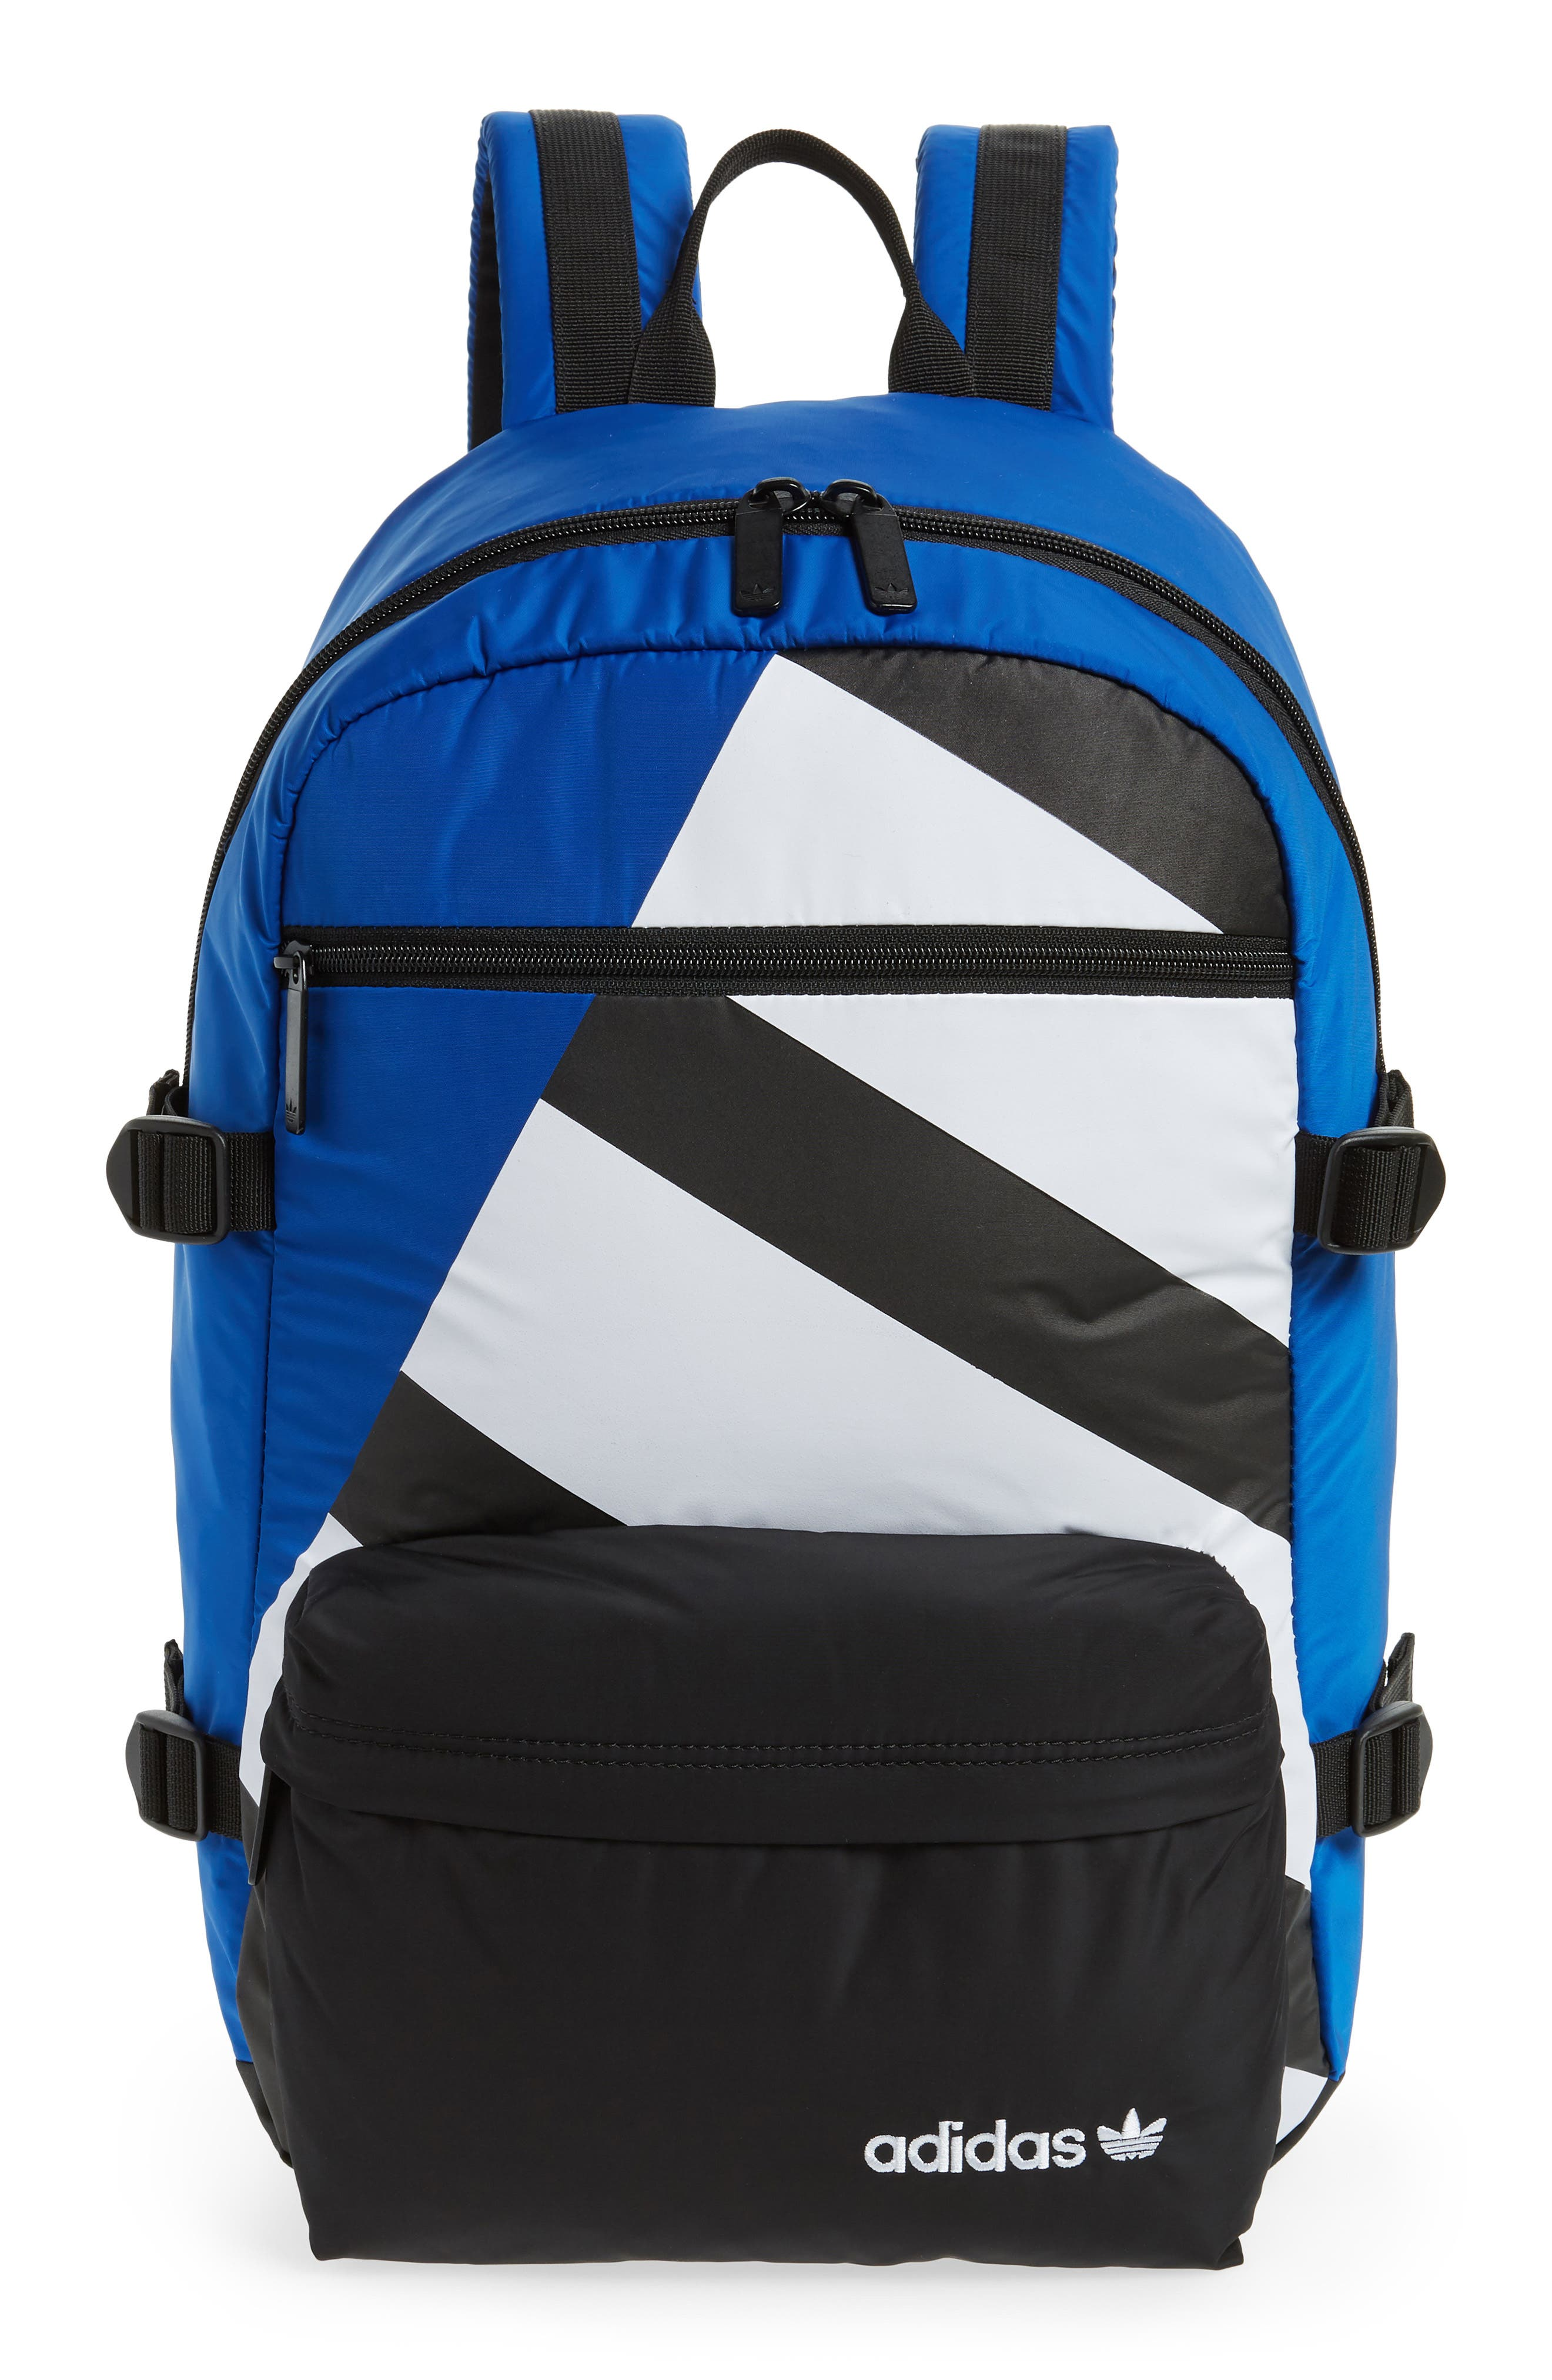 adidas Original EQT Blocked Backpack,                             Main thumbnail 1, color,                             COLLEGIATE BLUE/ BLACK/ WHITE